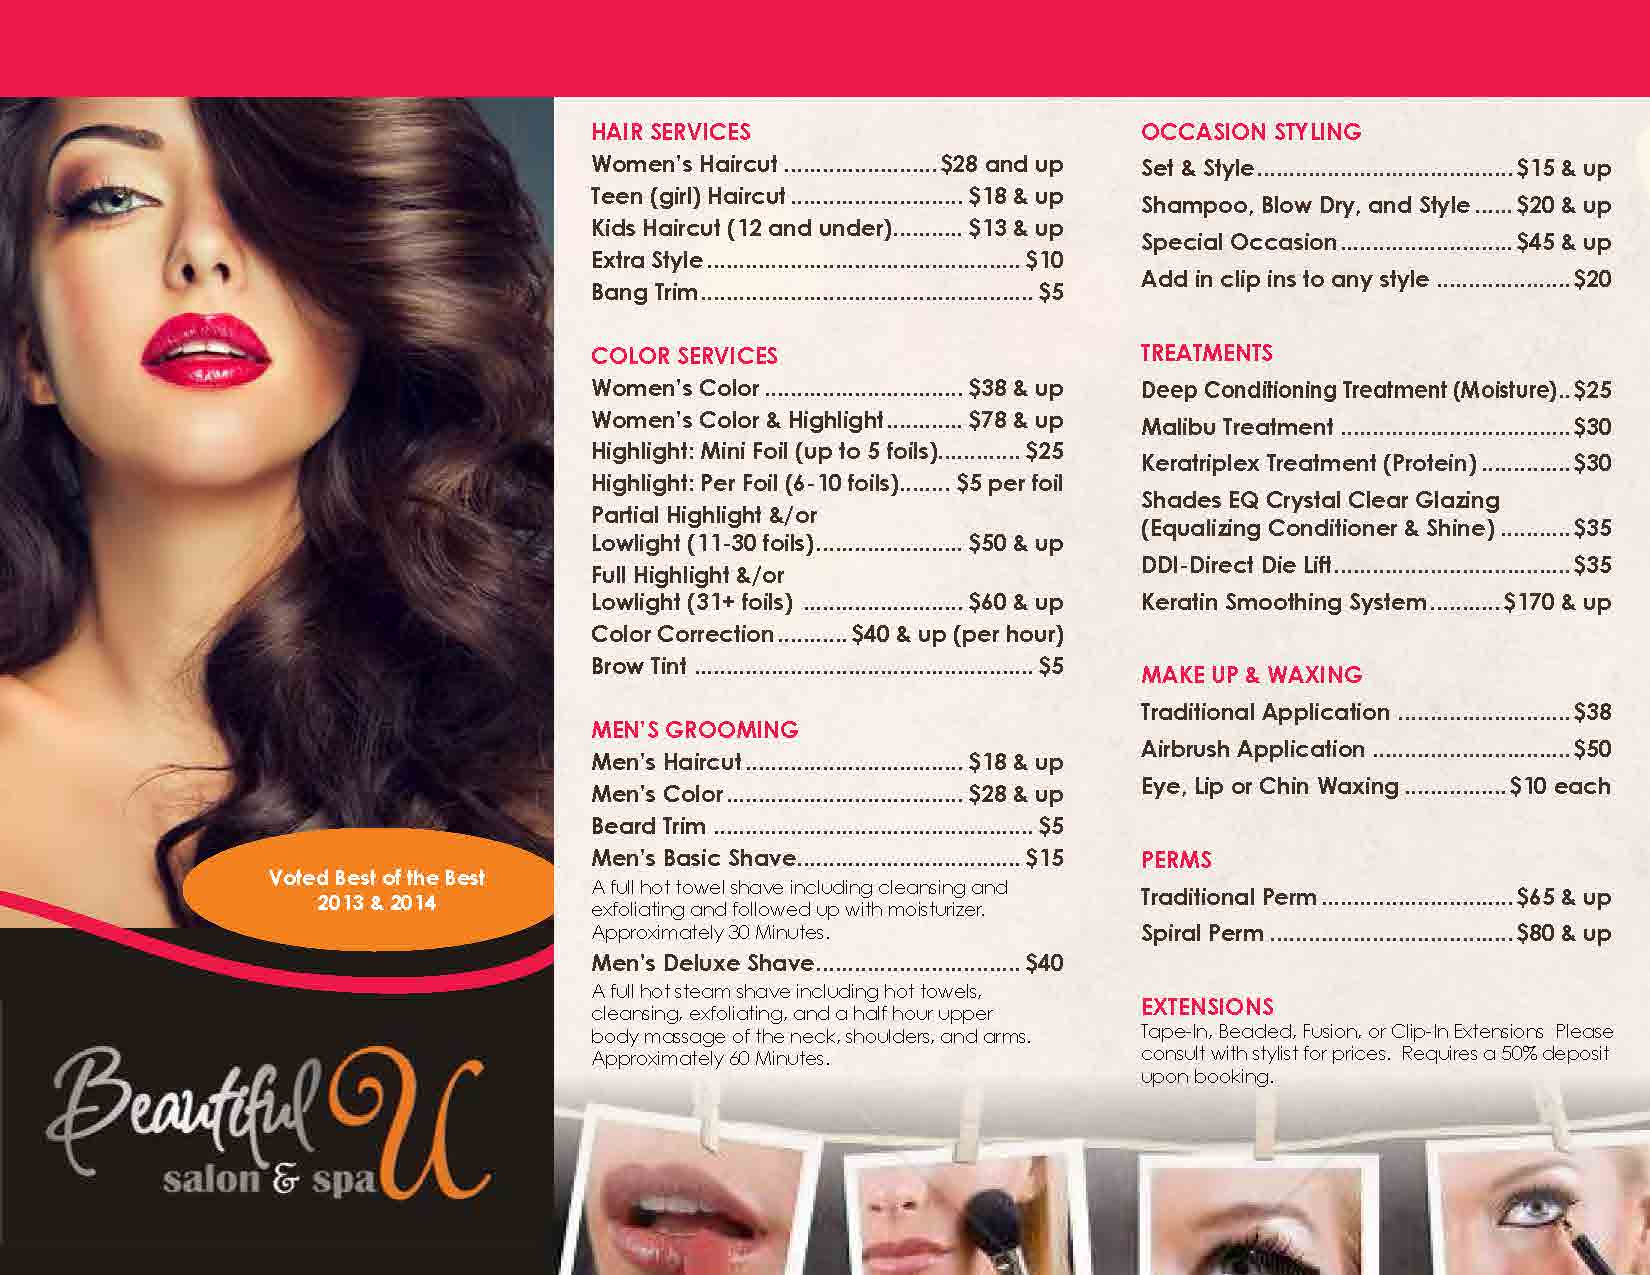 Beauty salons that do makeup near me makeup geek for Spa services near me